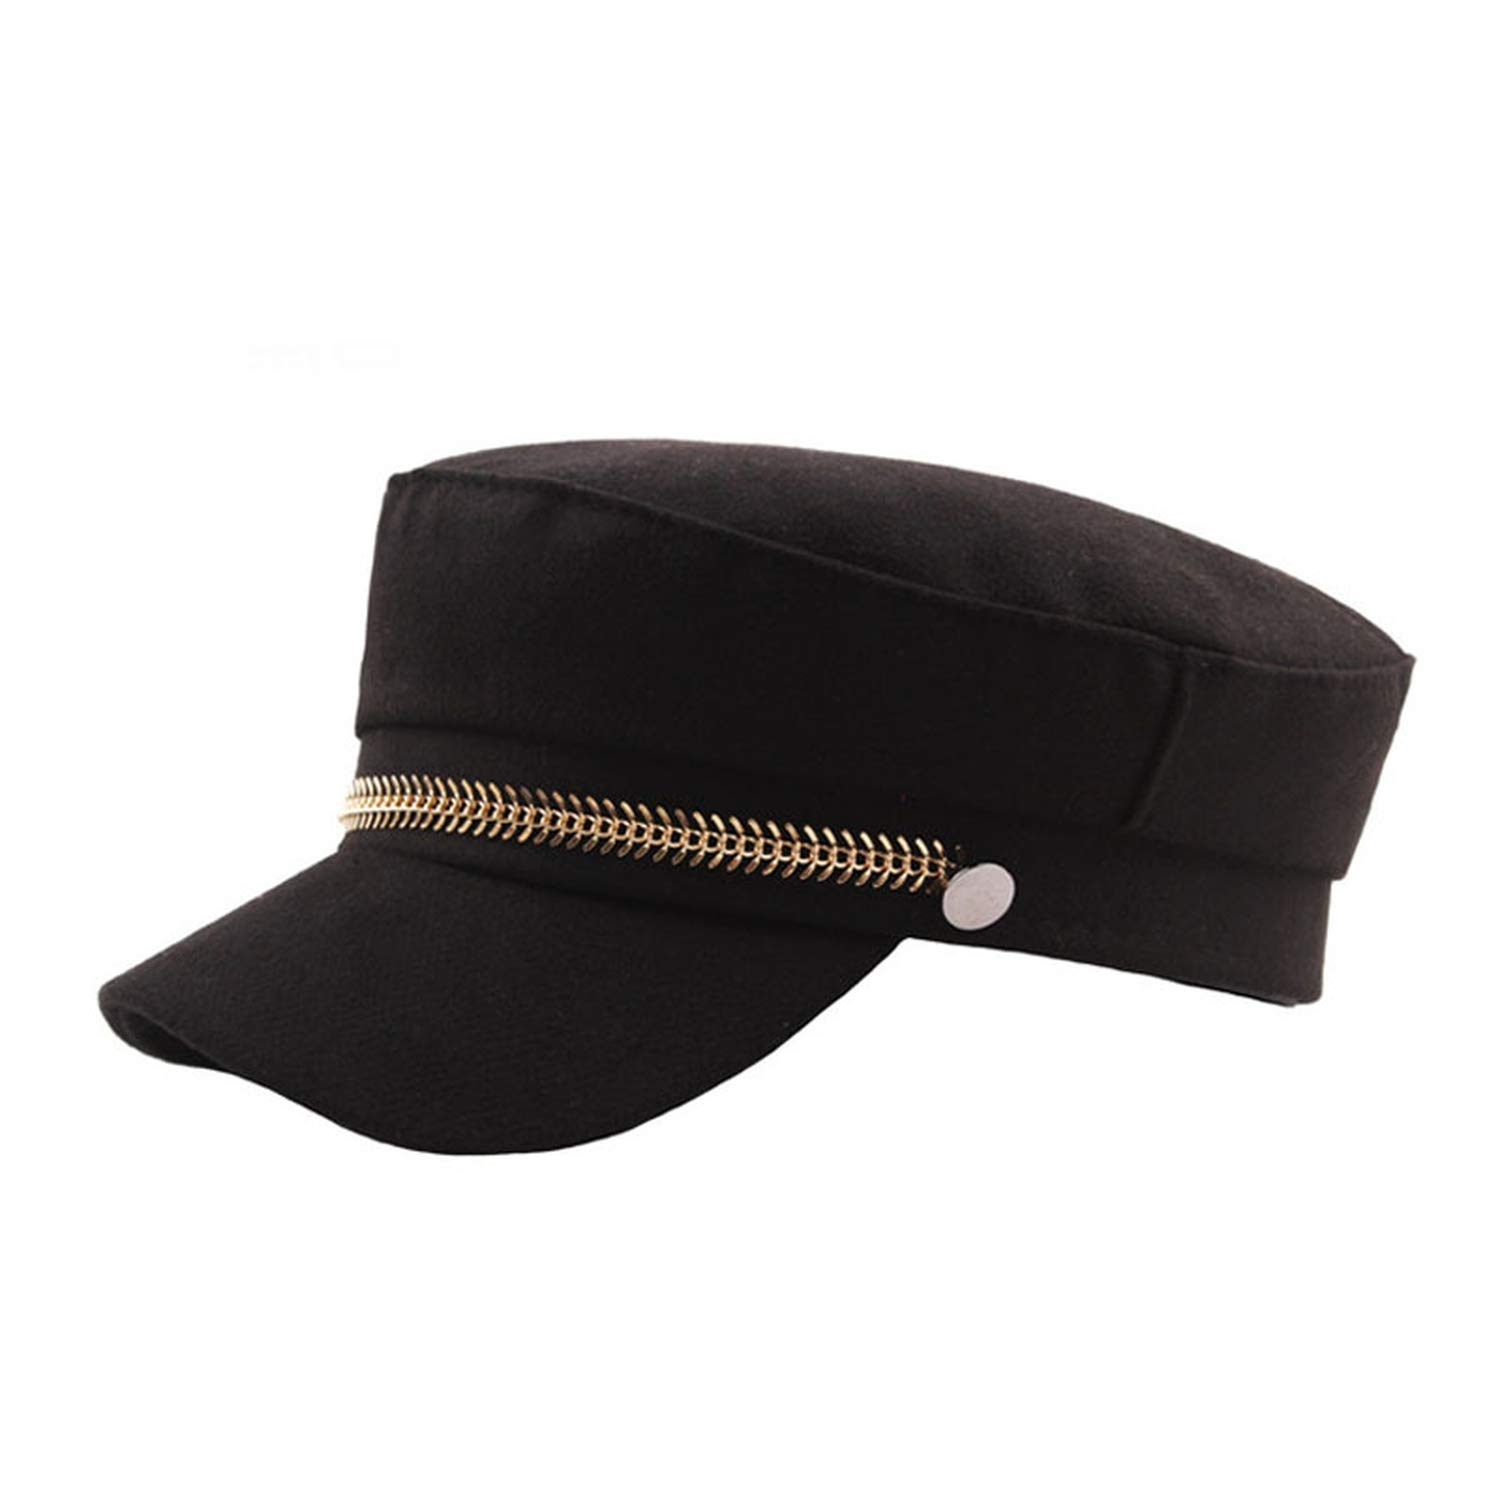 MEIZOKEN Gold Chain Woolen Feel Newsboy Hats Women Cap Flat Caps Men Gorras Mujer, Black at Amazon Womens Clothing store: